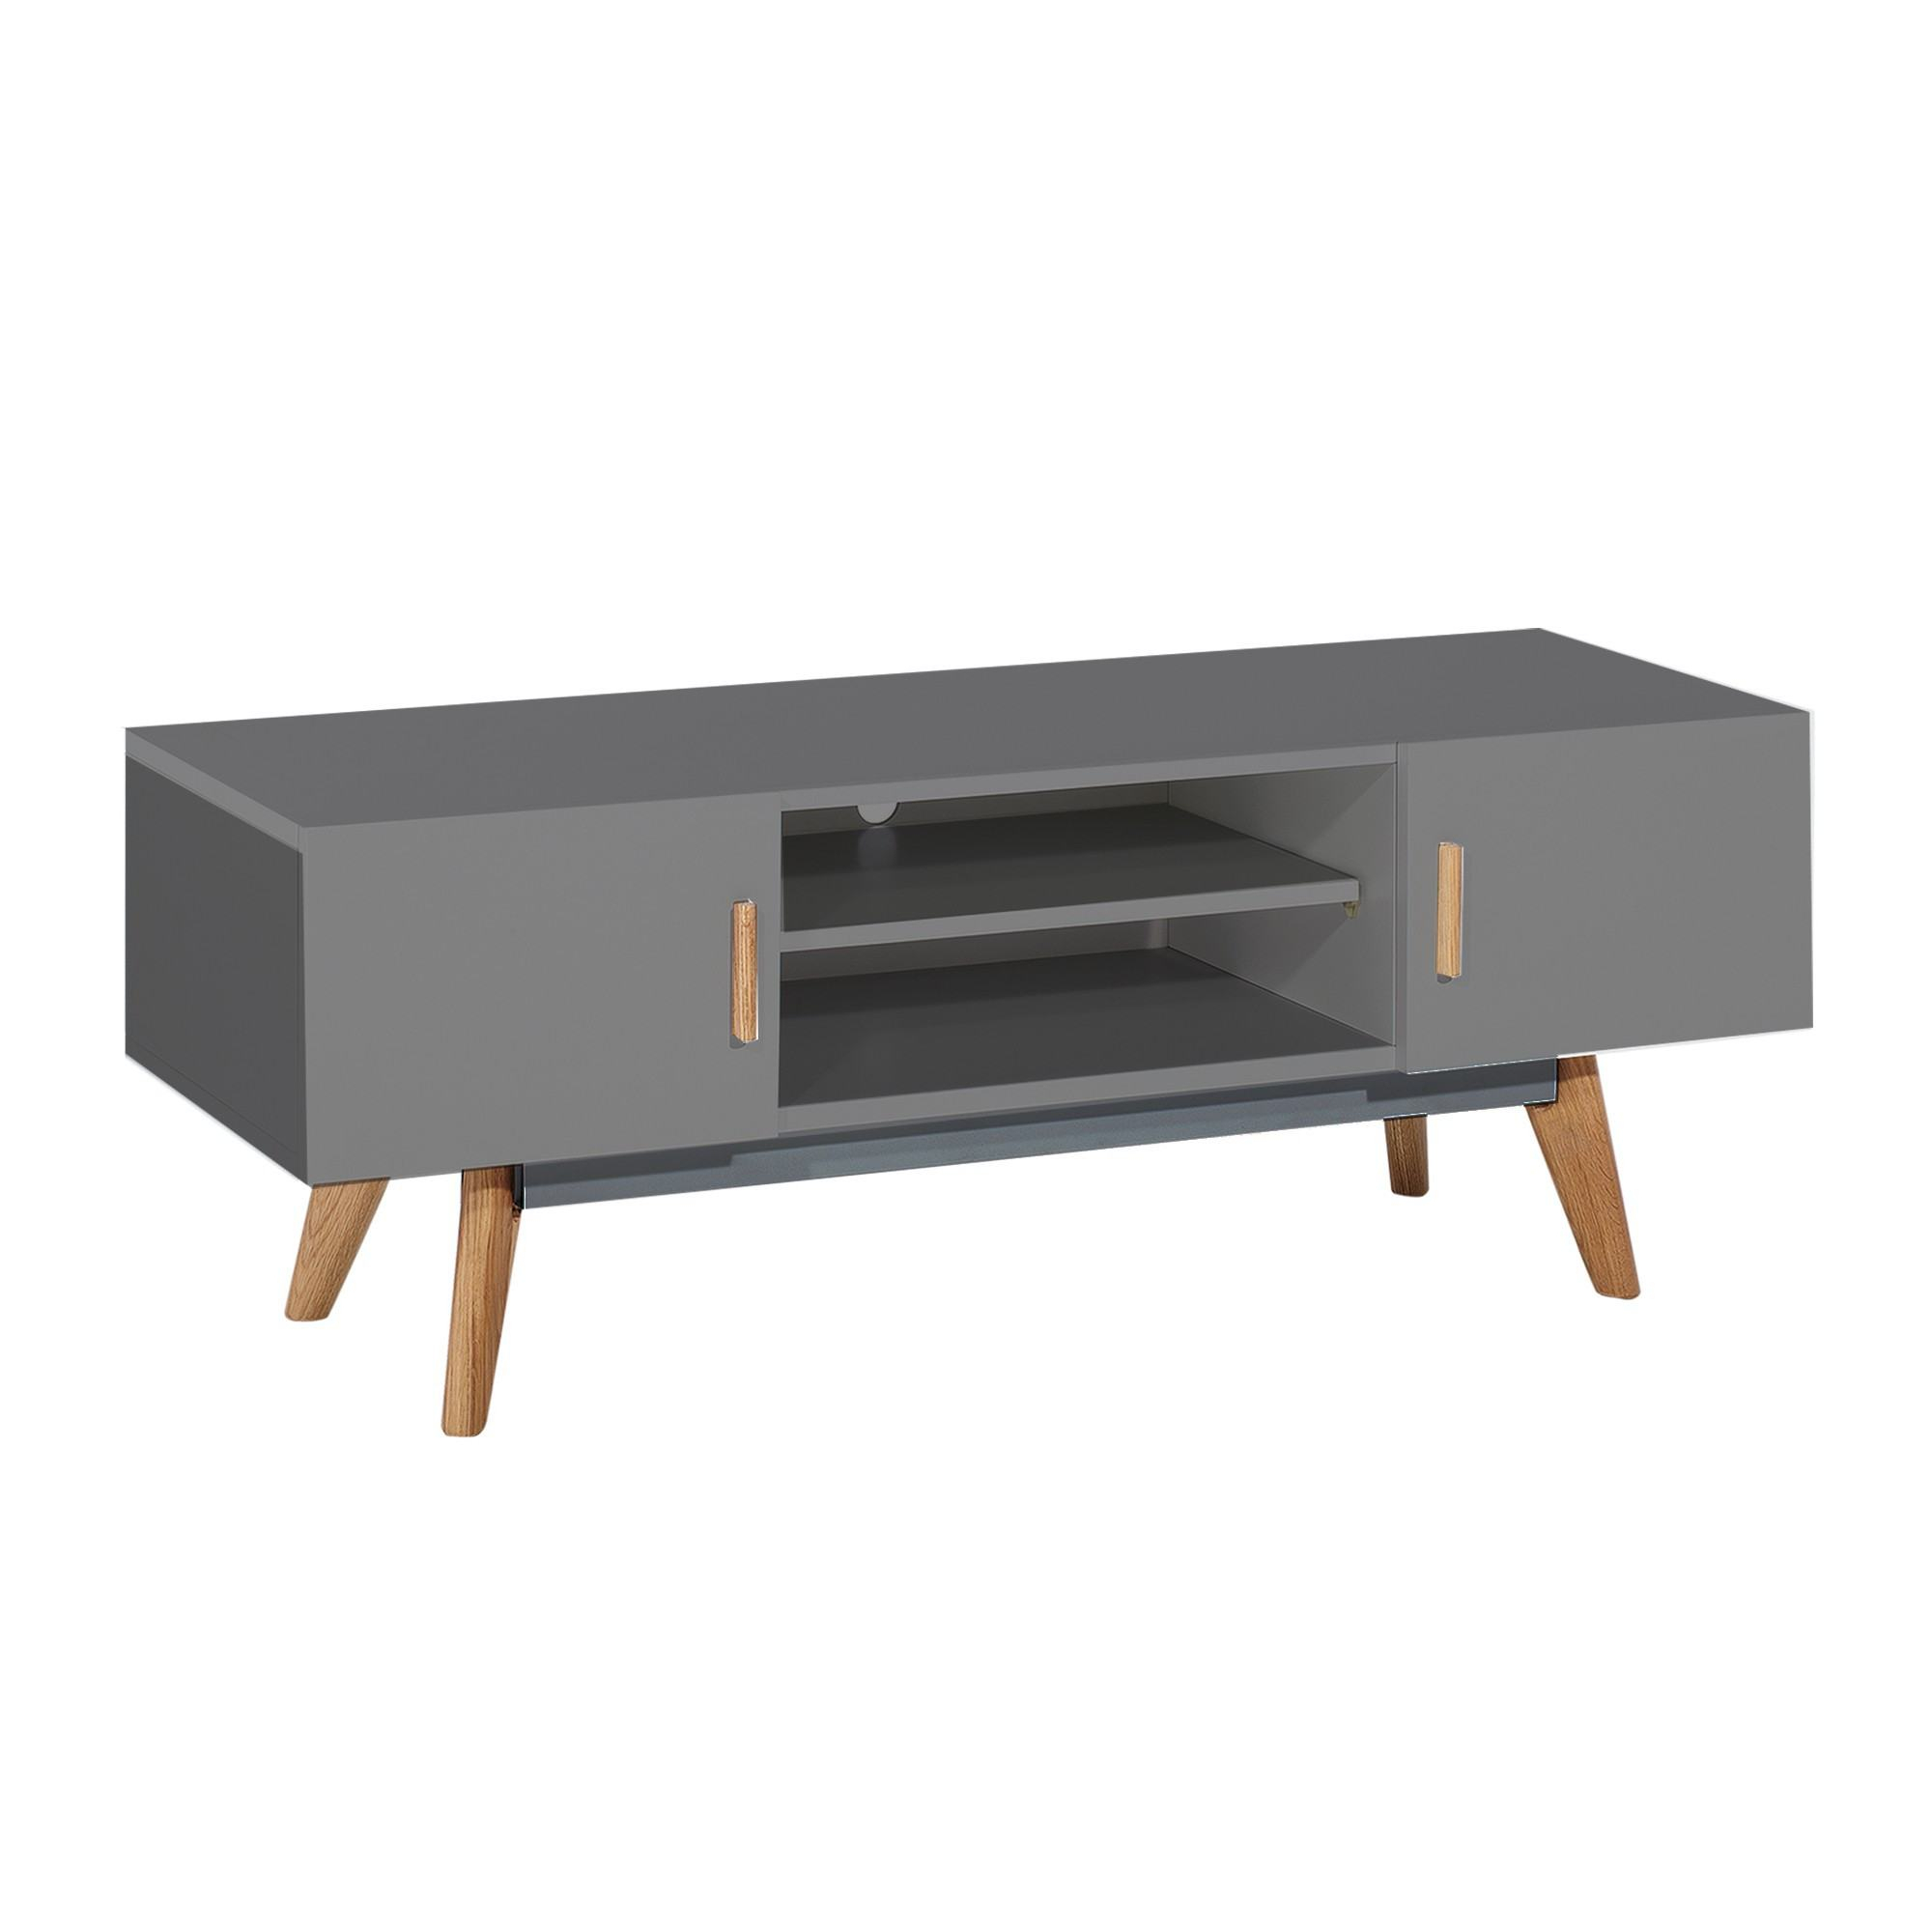 35 Creative Grey Tv Stand For Living Room Decor | Cakestandlady For Sinclair Grey 74 Inch Tv Stands (Photo 16 of 30)